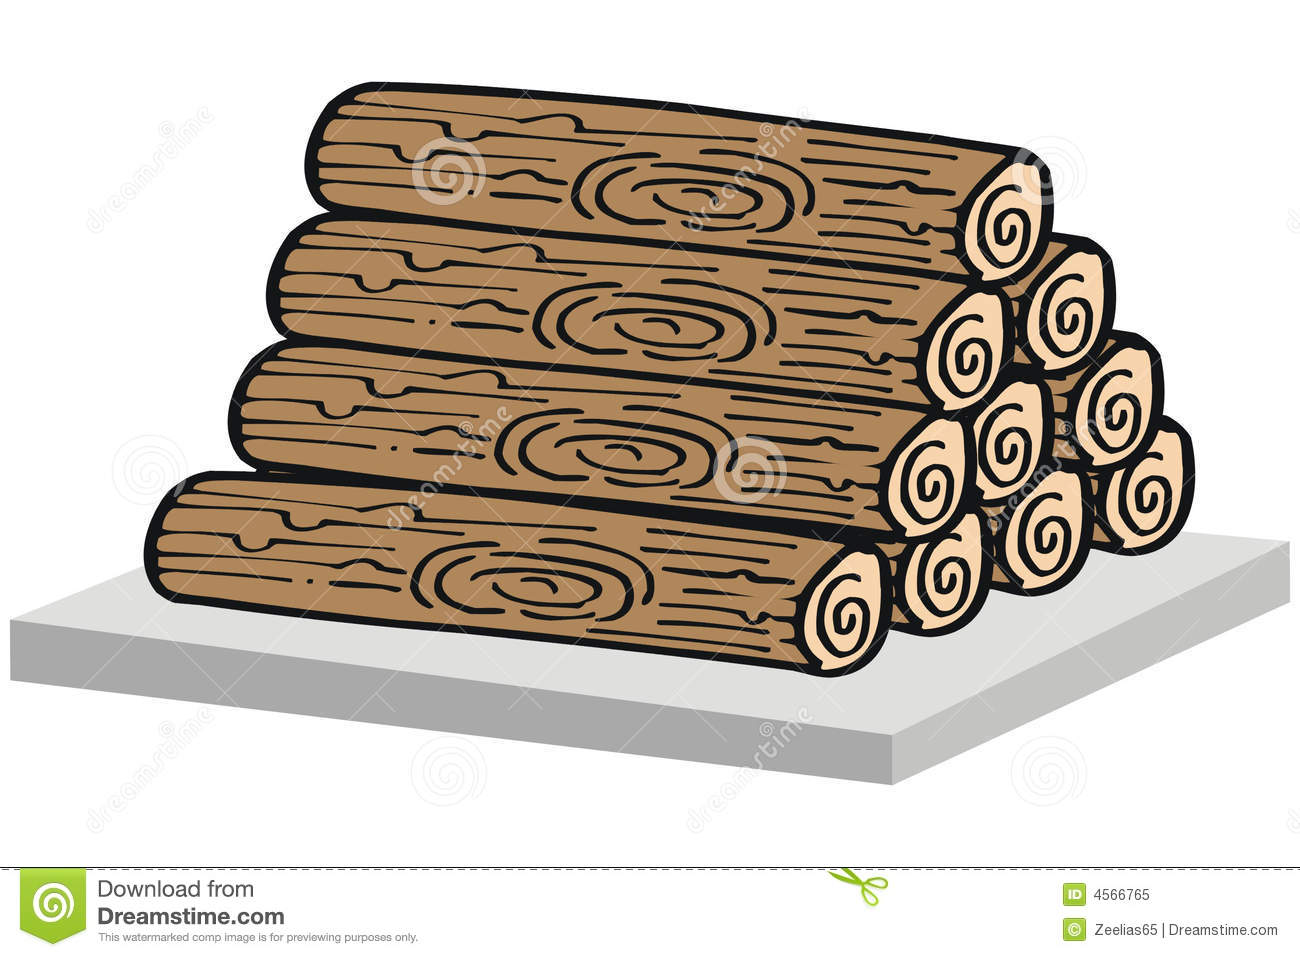 Wood clipart Art Wood Clip Wood Clipartner